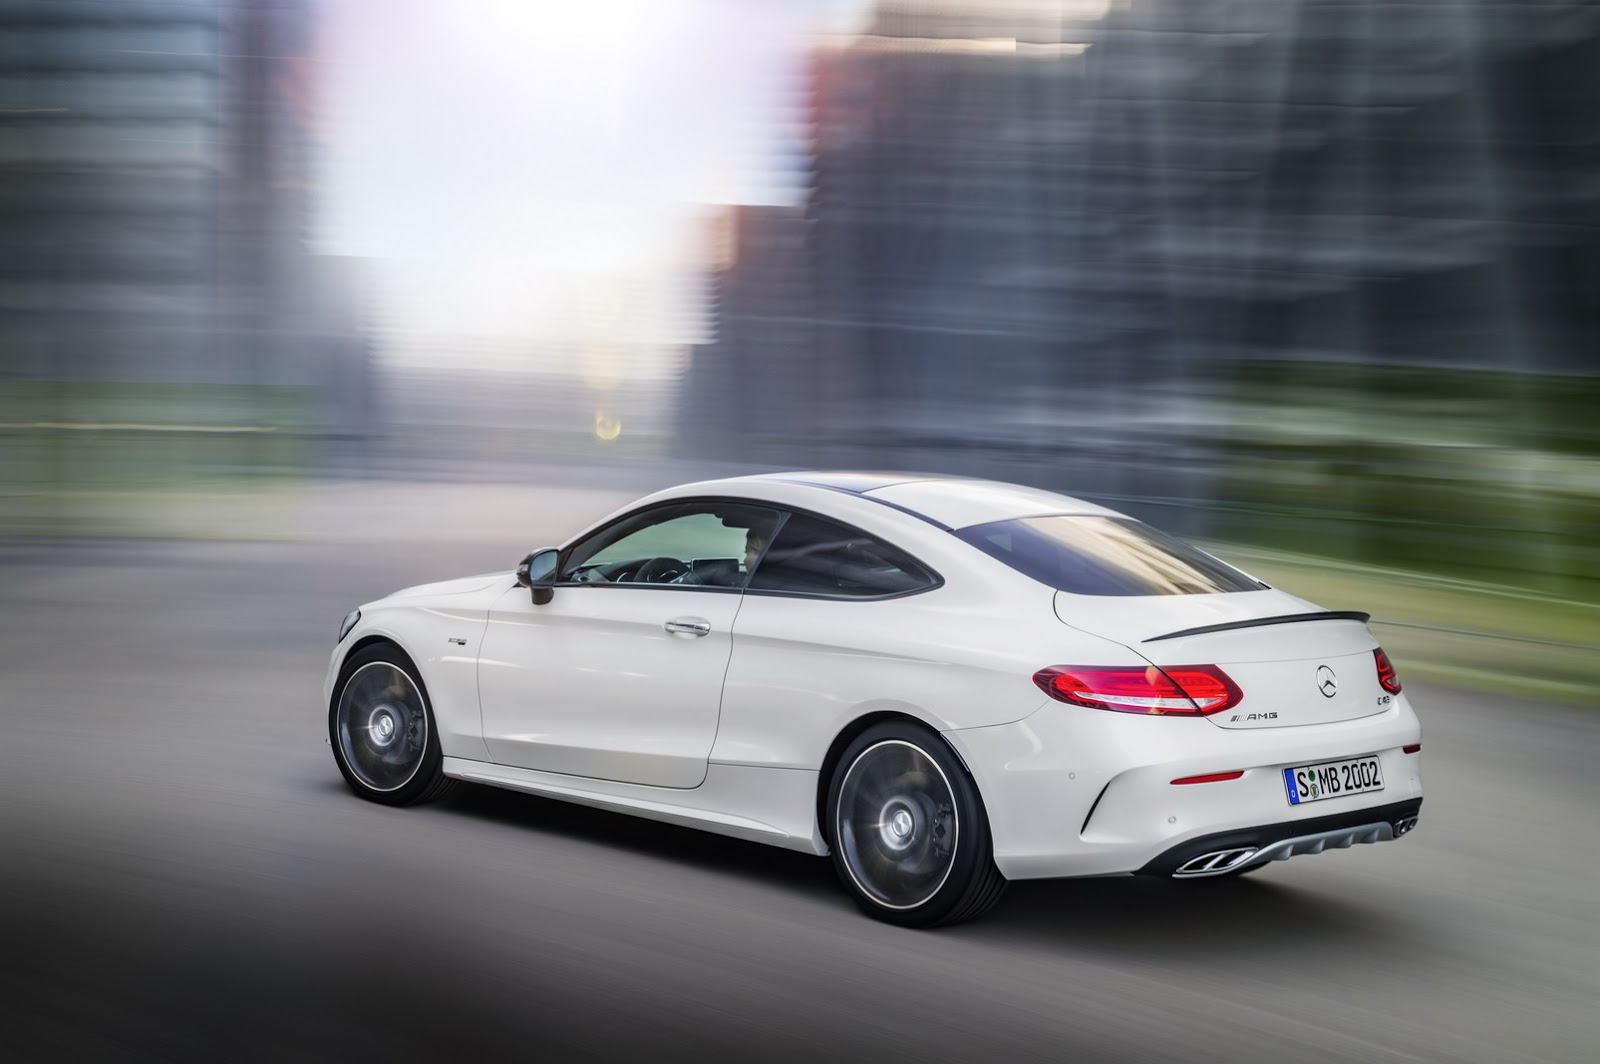 new mercedes amg c43 4matic coupe packs a 362hp v6 turbo. Black Bedroom Furniture Sets. Home Design Ideas